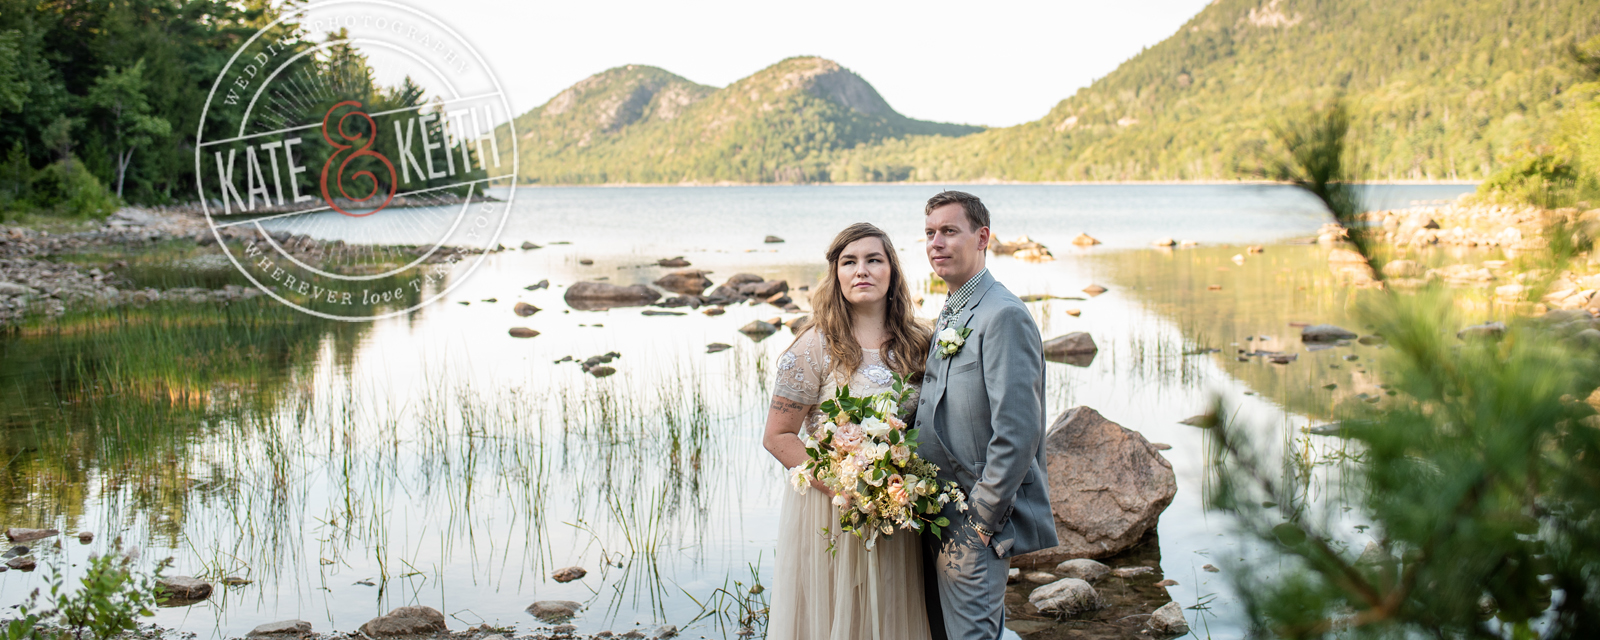 Jordan Pond Wedding